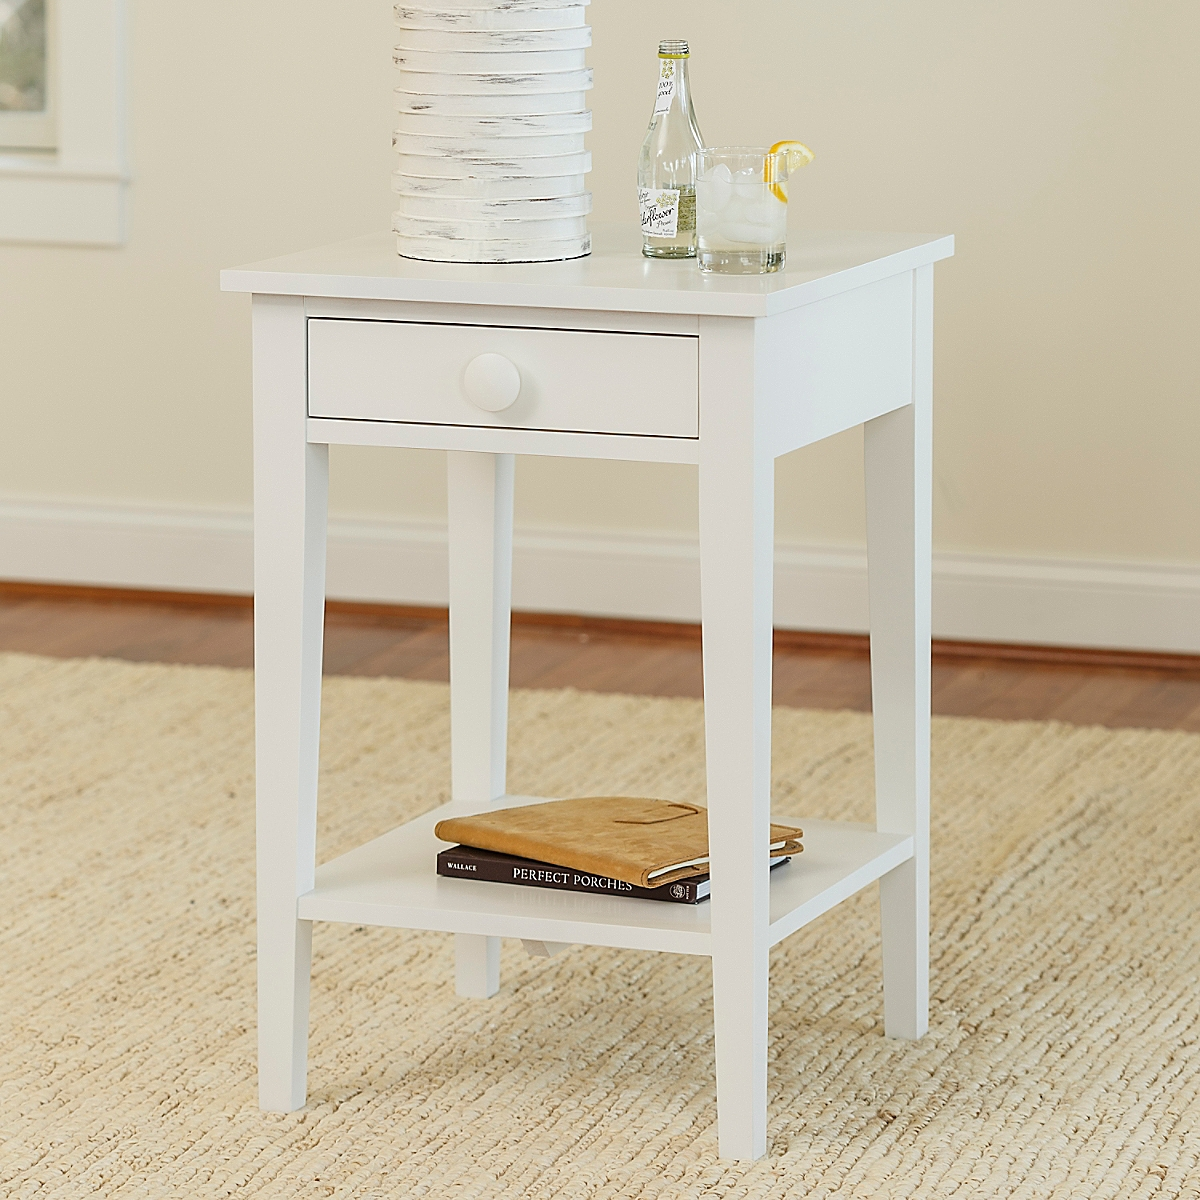 Side table with drawer and shelf - Addy Side Table With Shelf